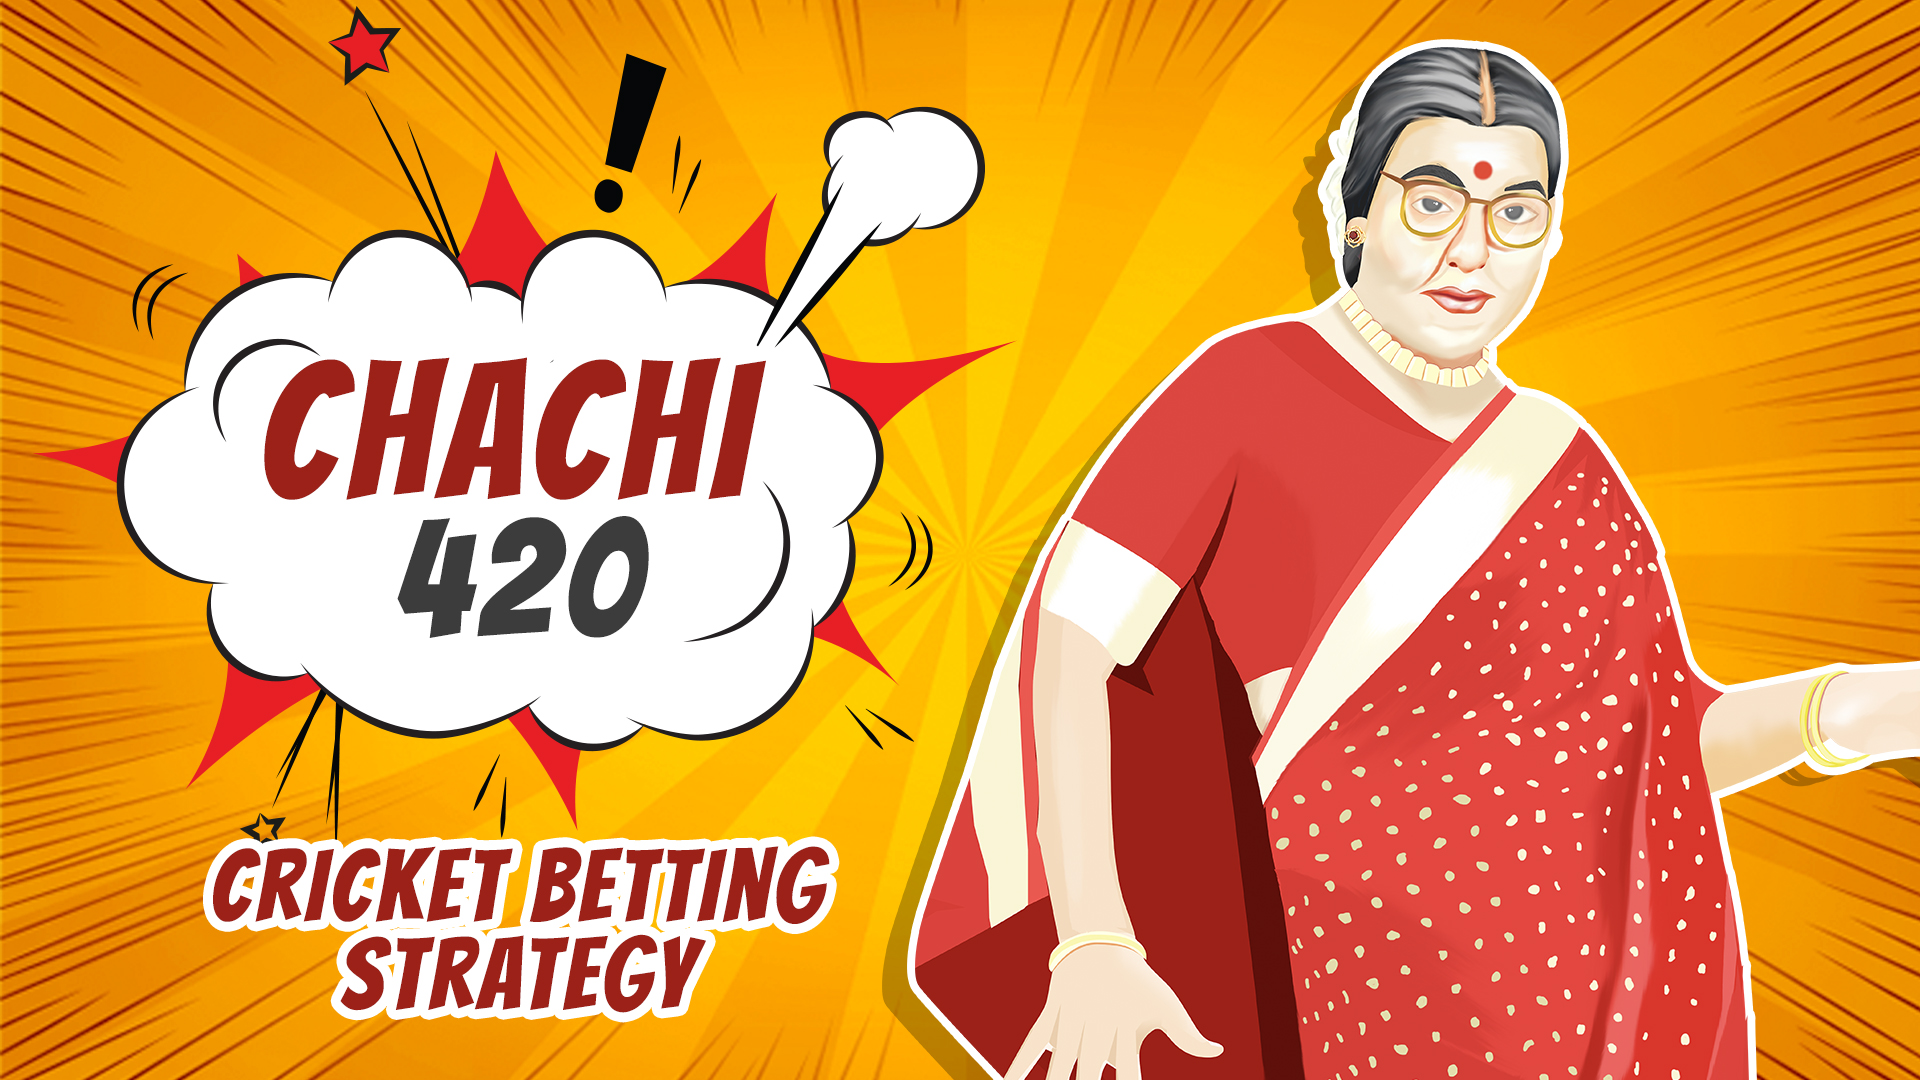 Chachi 420 Cricket Betting Strategy